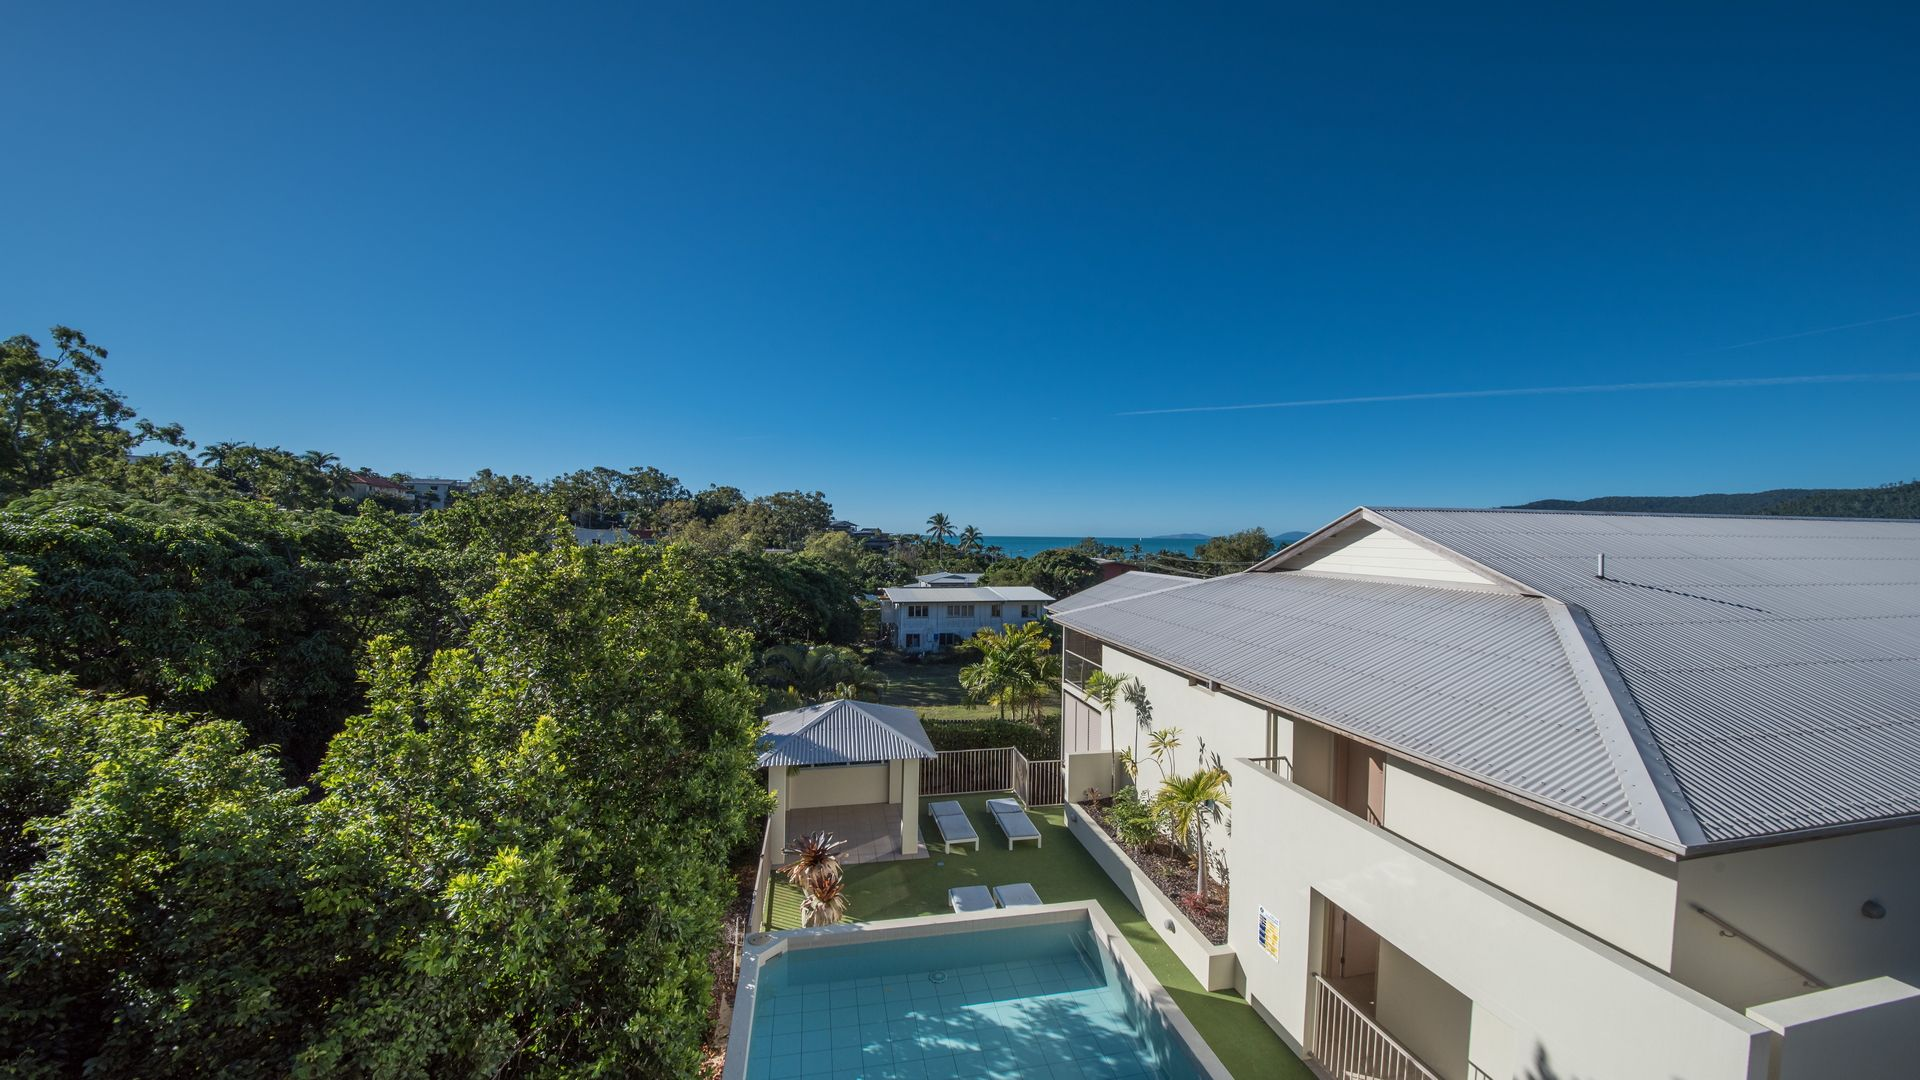 8/14 Waterson Way, Airlie Beach QLD 4802 - Apartment For